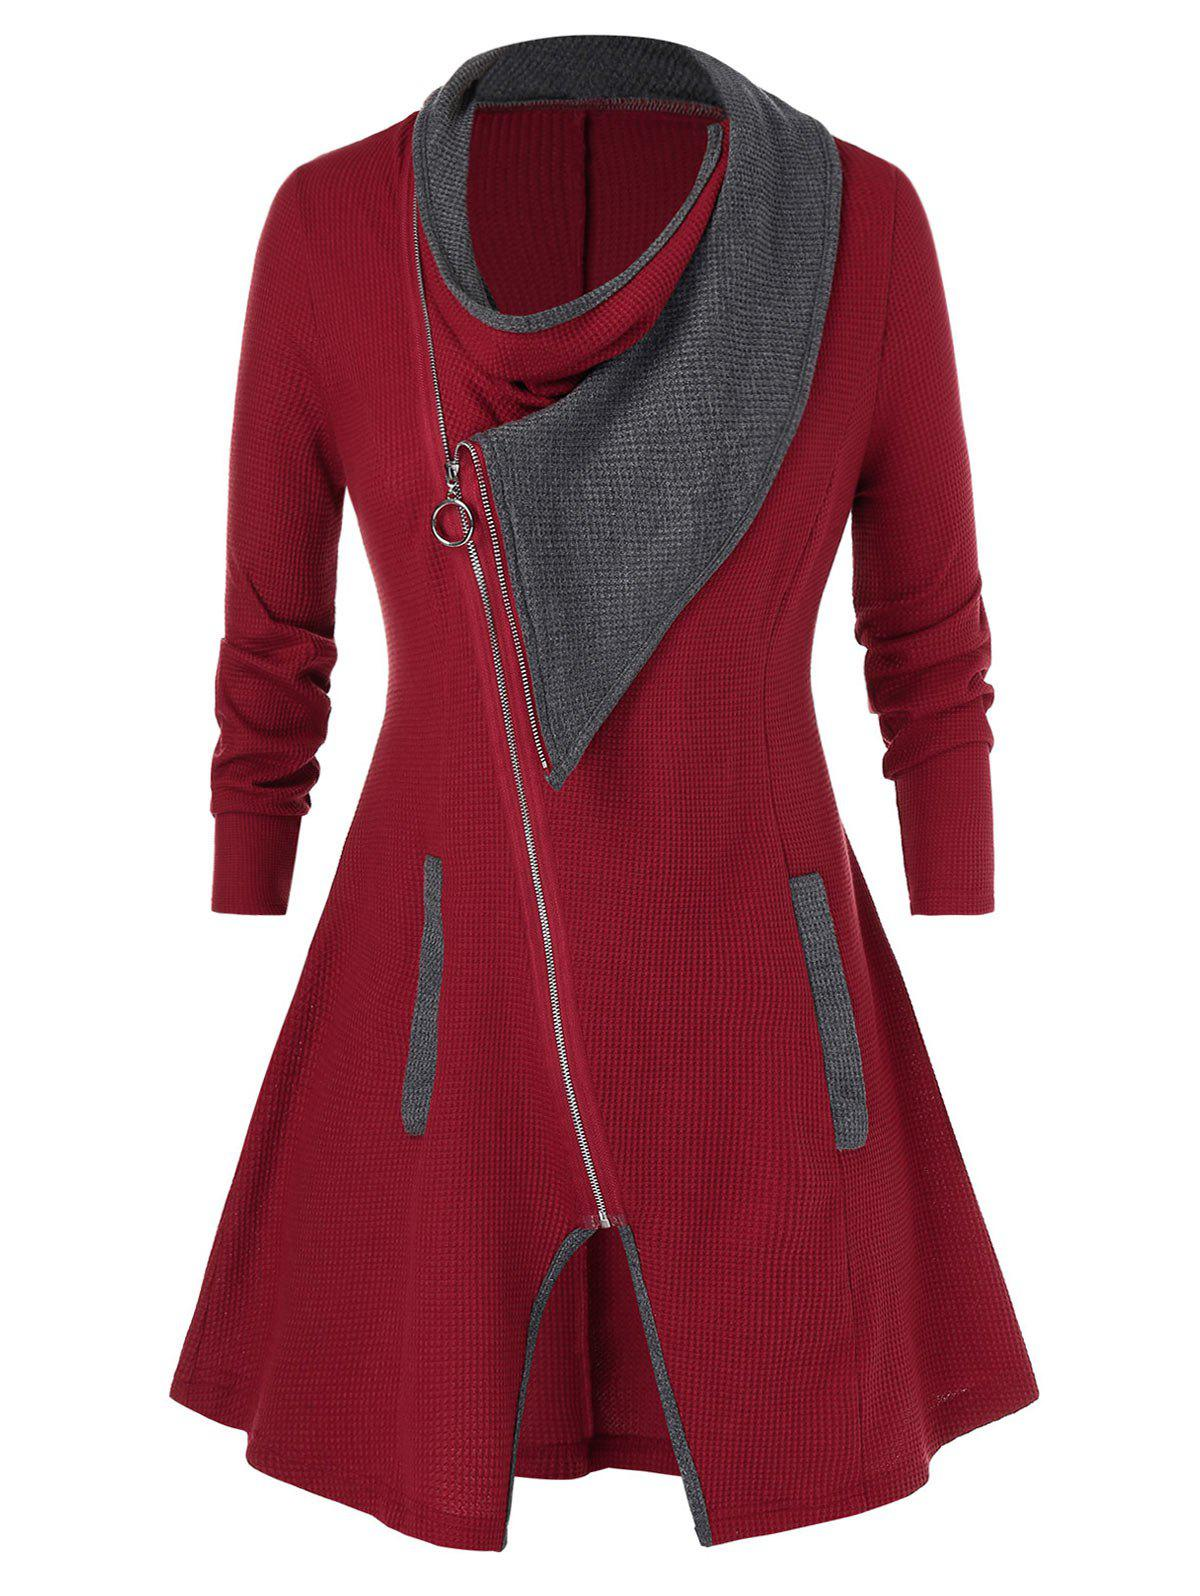 Plus Size Contraste Full Zip Couleur Cardigan Rouge Vineux 5X